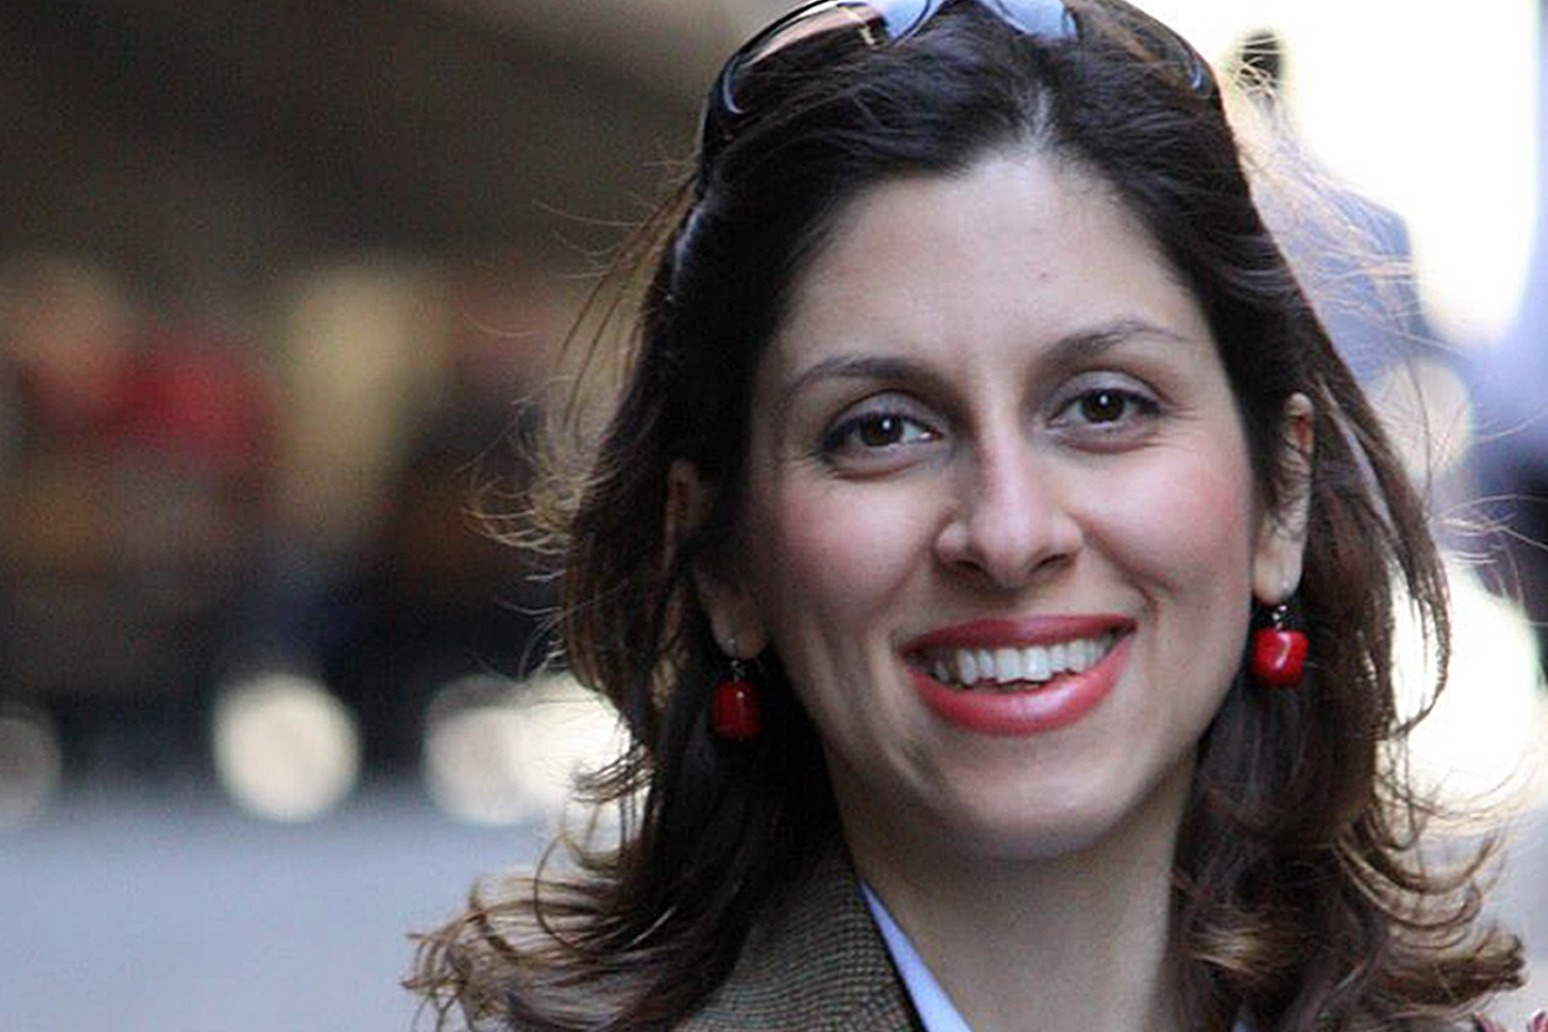 Nazanin Zaghari-Ratcliffe given 'inhumane' further one-year in Iranian jail